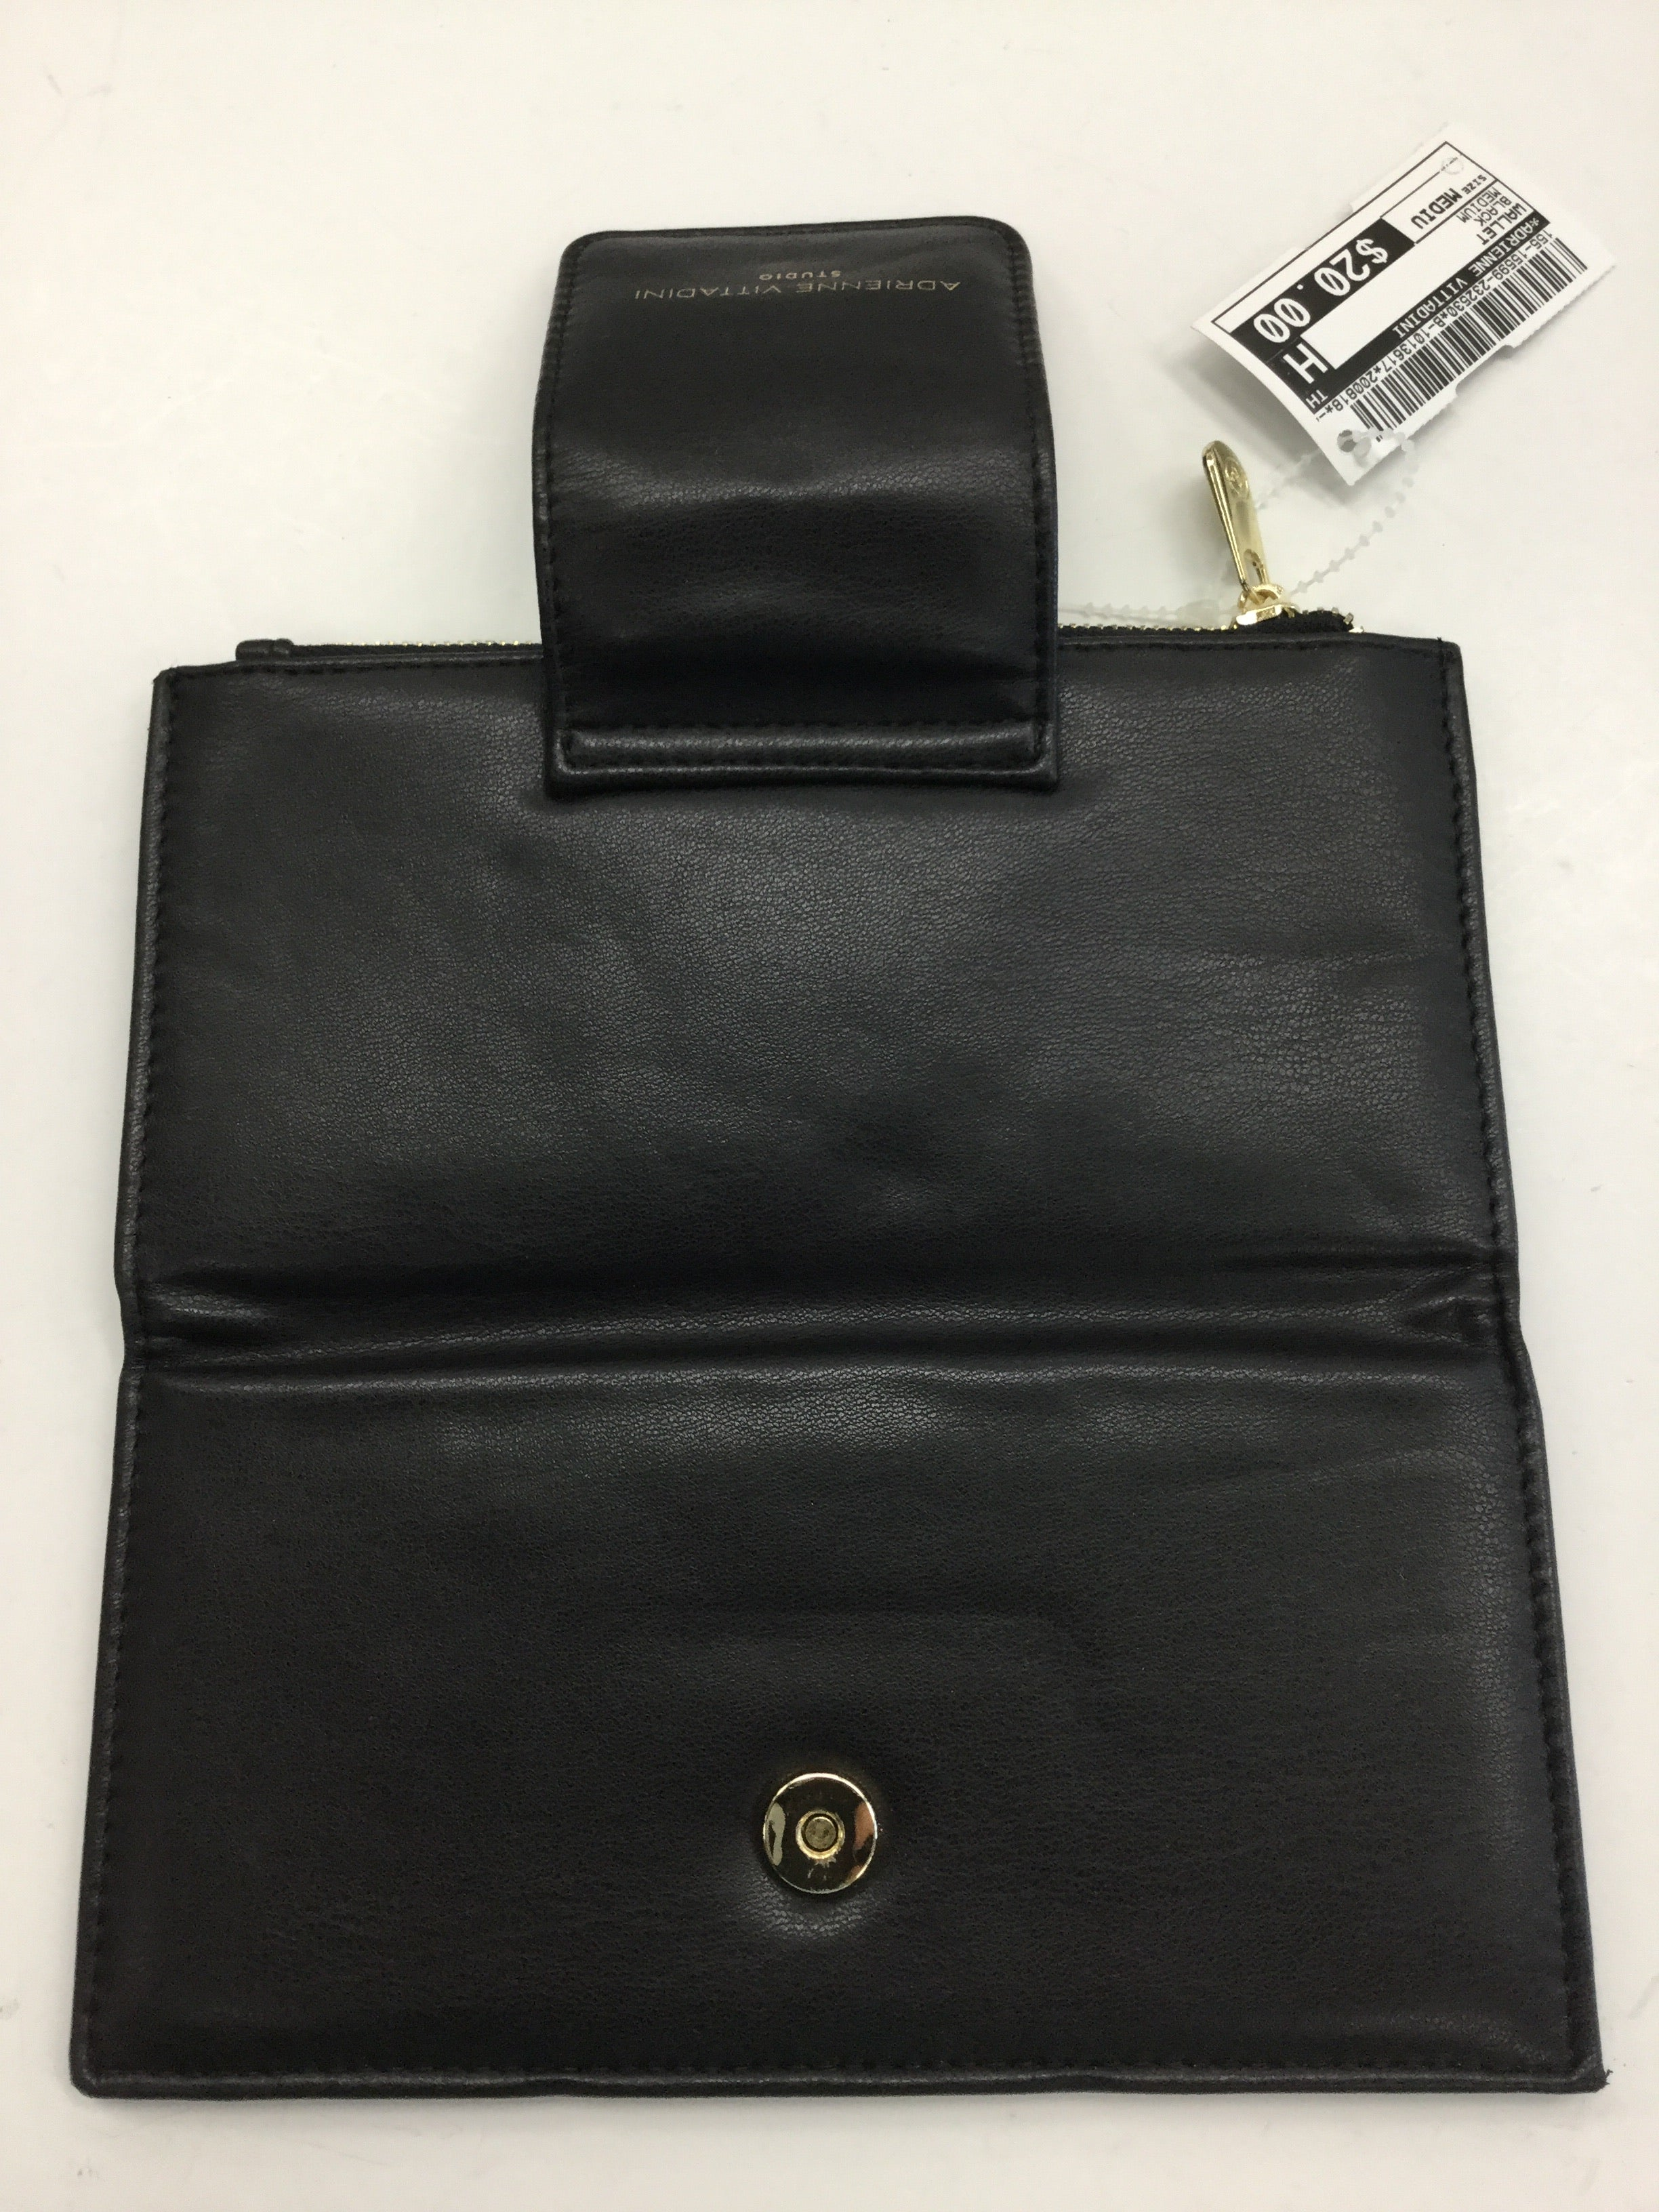 Photo #2 - BRAND: ADRIENNE VITTADINI <BR>STYLE: WALLET <BR>COLOR: BLACK <BR>SIZE: MEDIUM <BR>SKU: 155-15599-232530